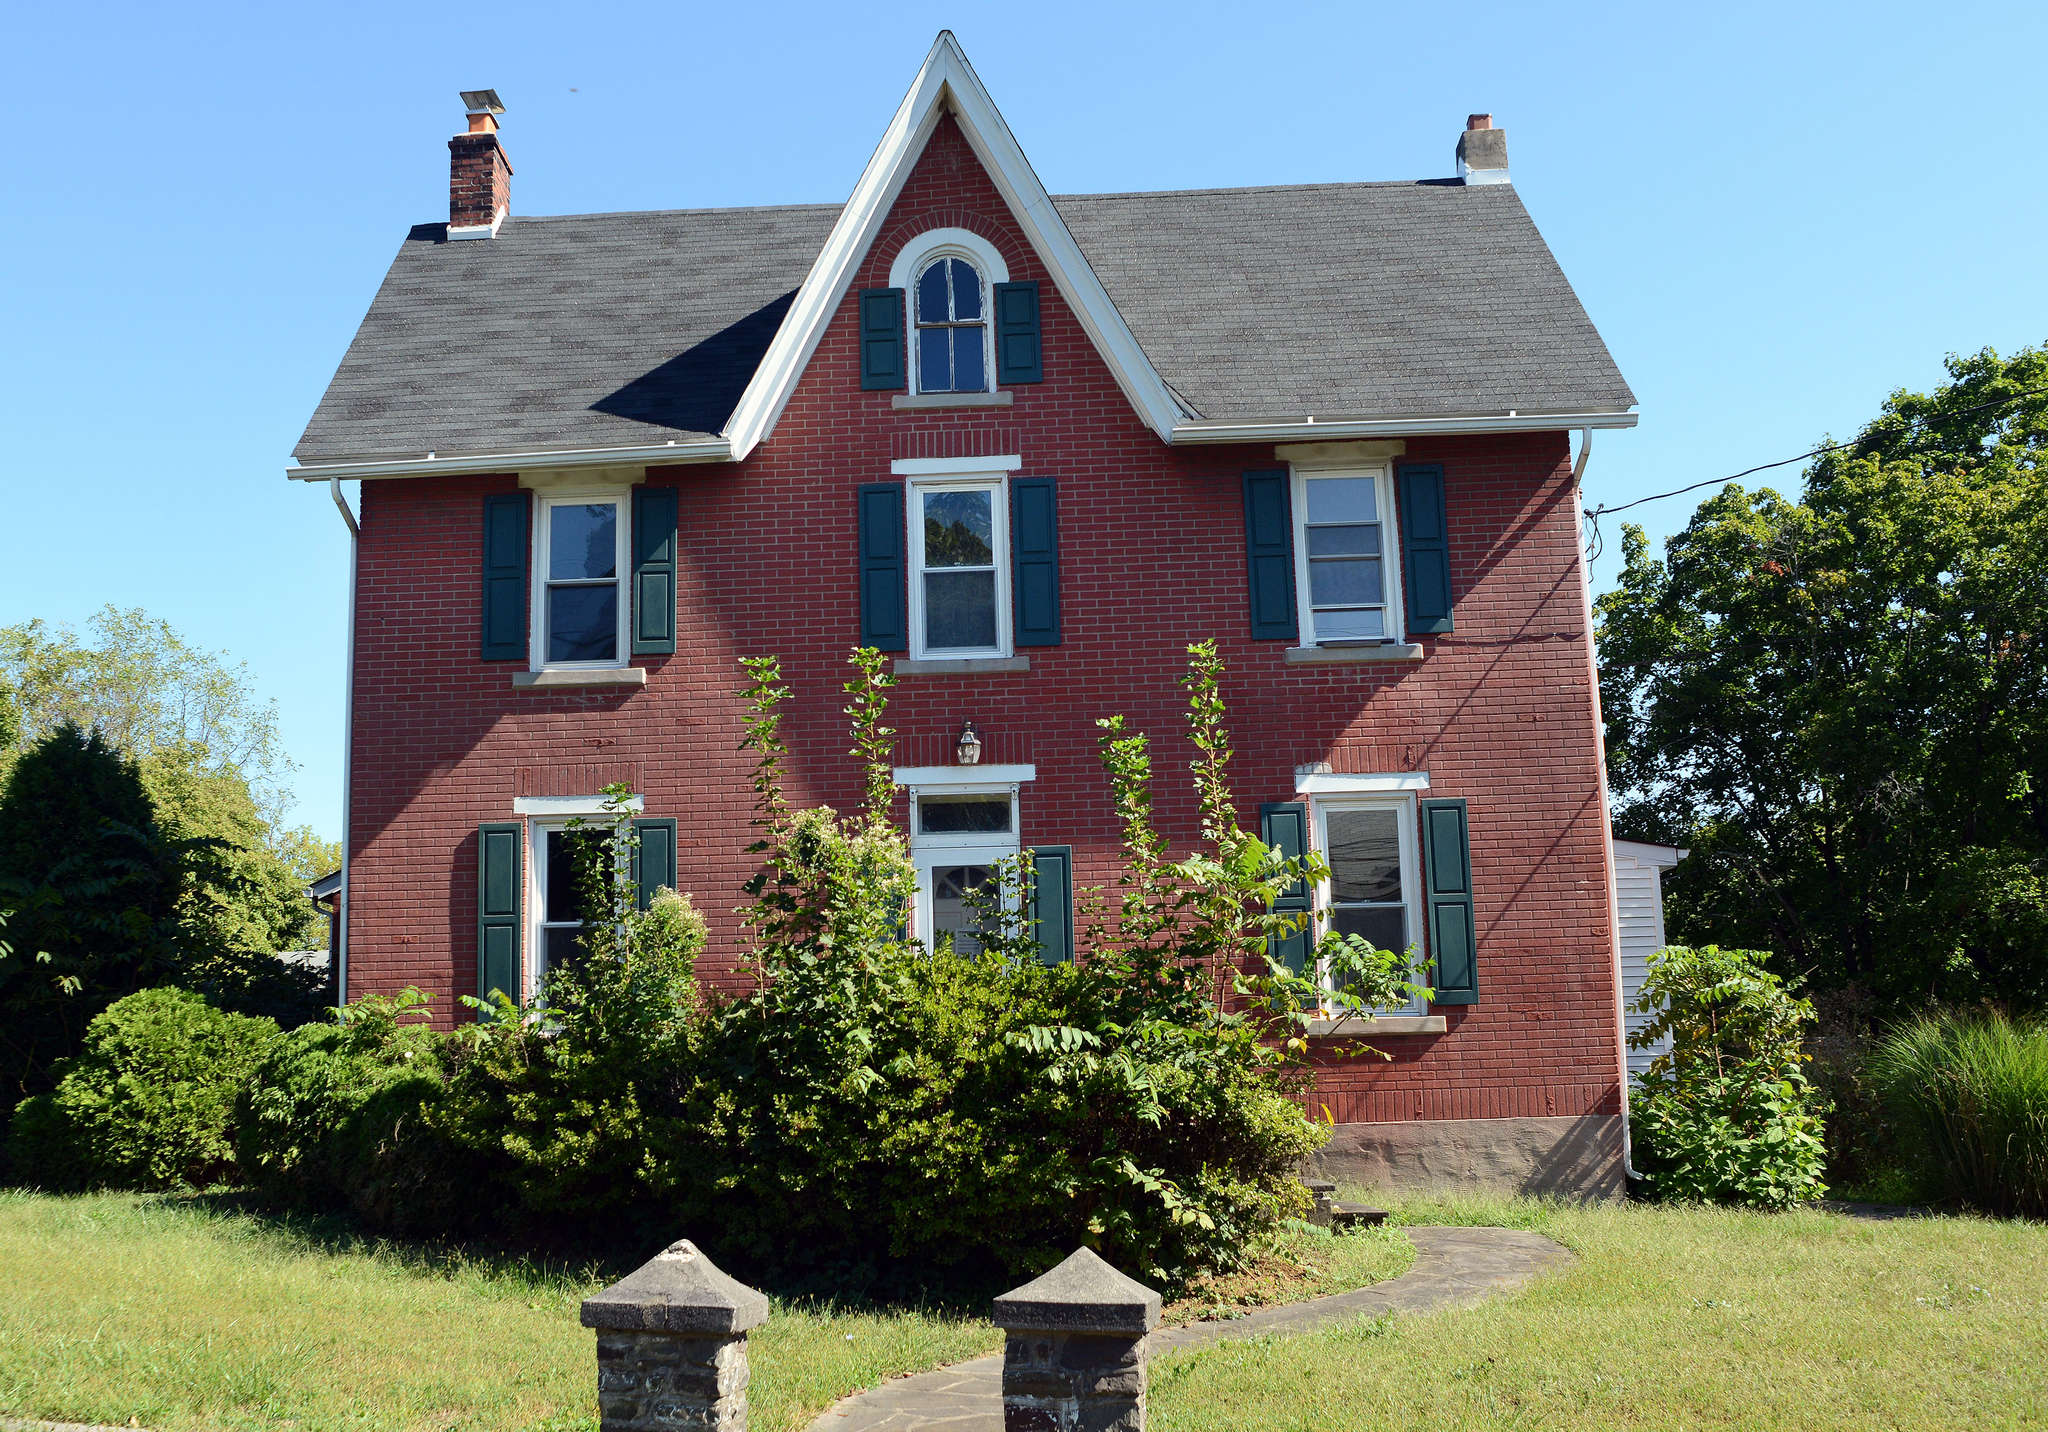 Homes for sale in Tinicum include 236 Durham Rd., listed at $210,000. WILLIAM THOMAS CAIN